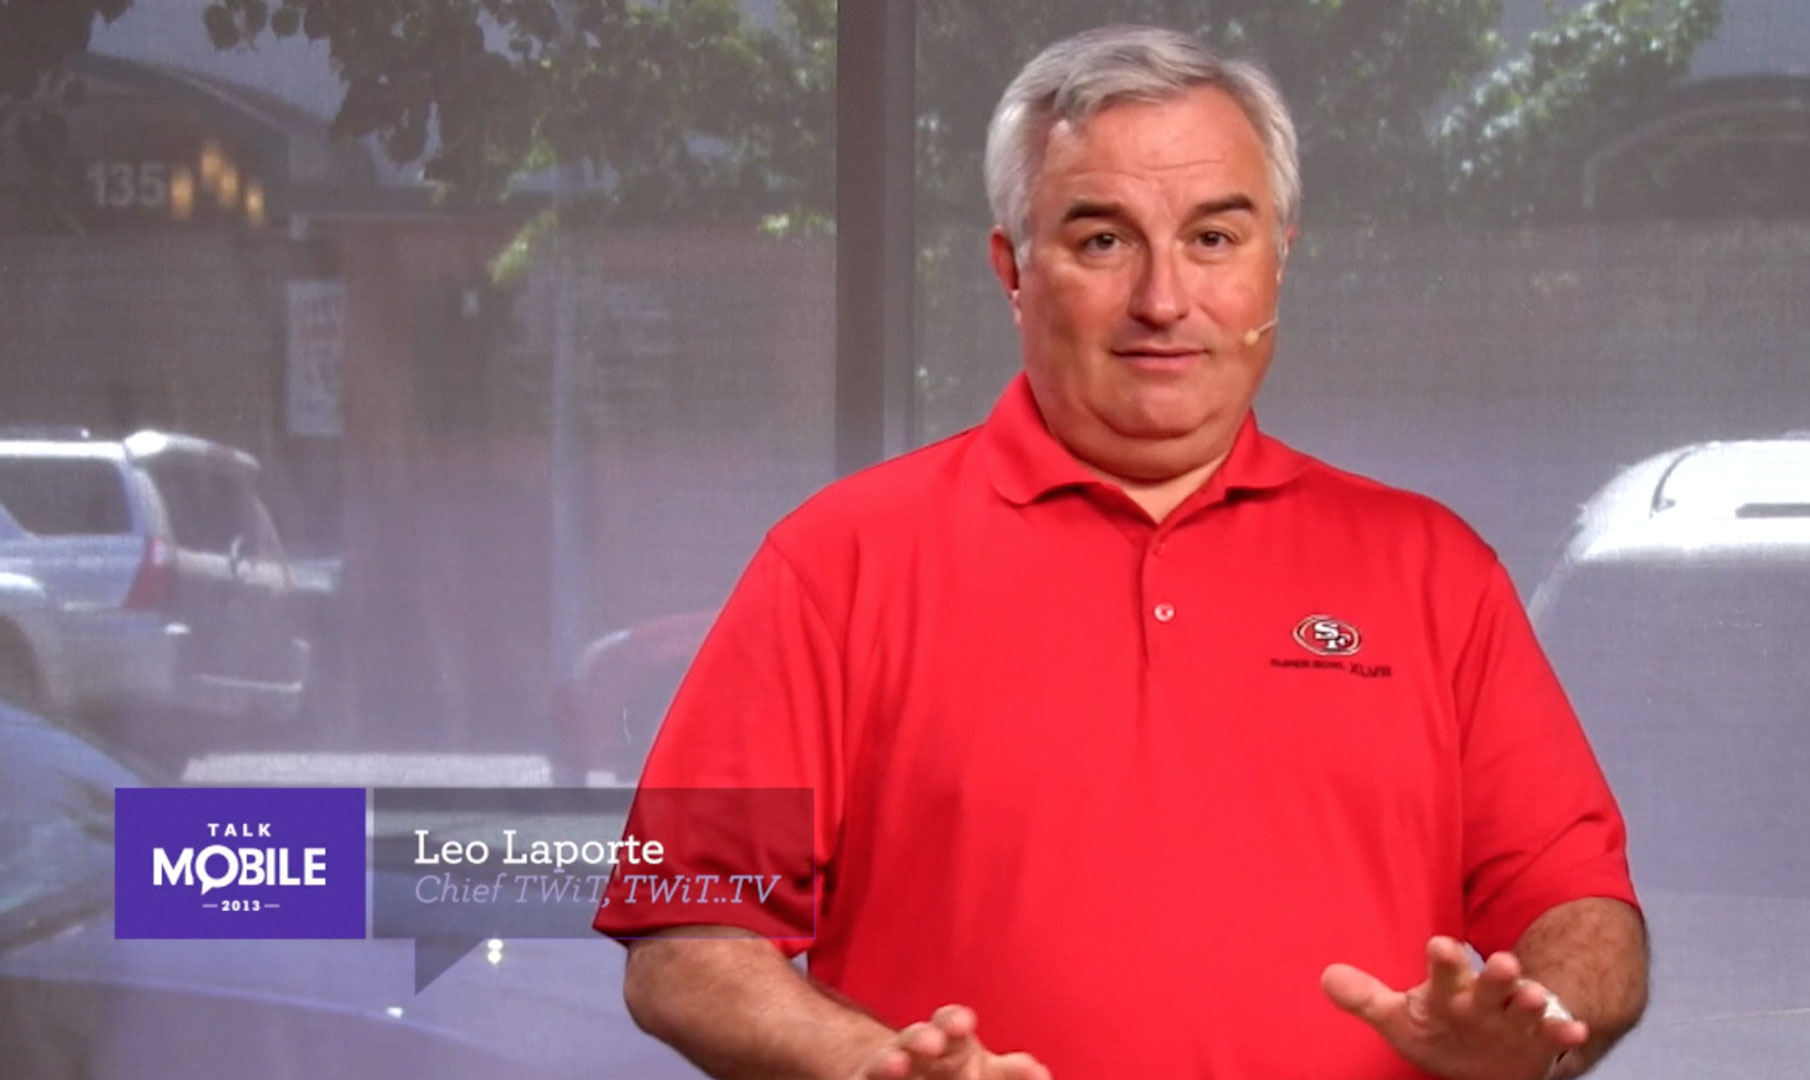 Watch Leo Laporte talk about the pace of mobile innovation